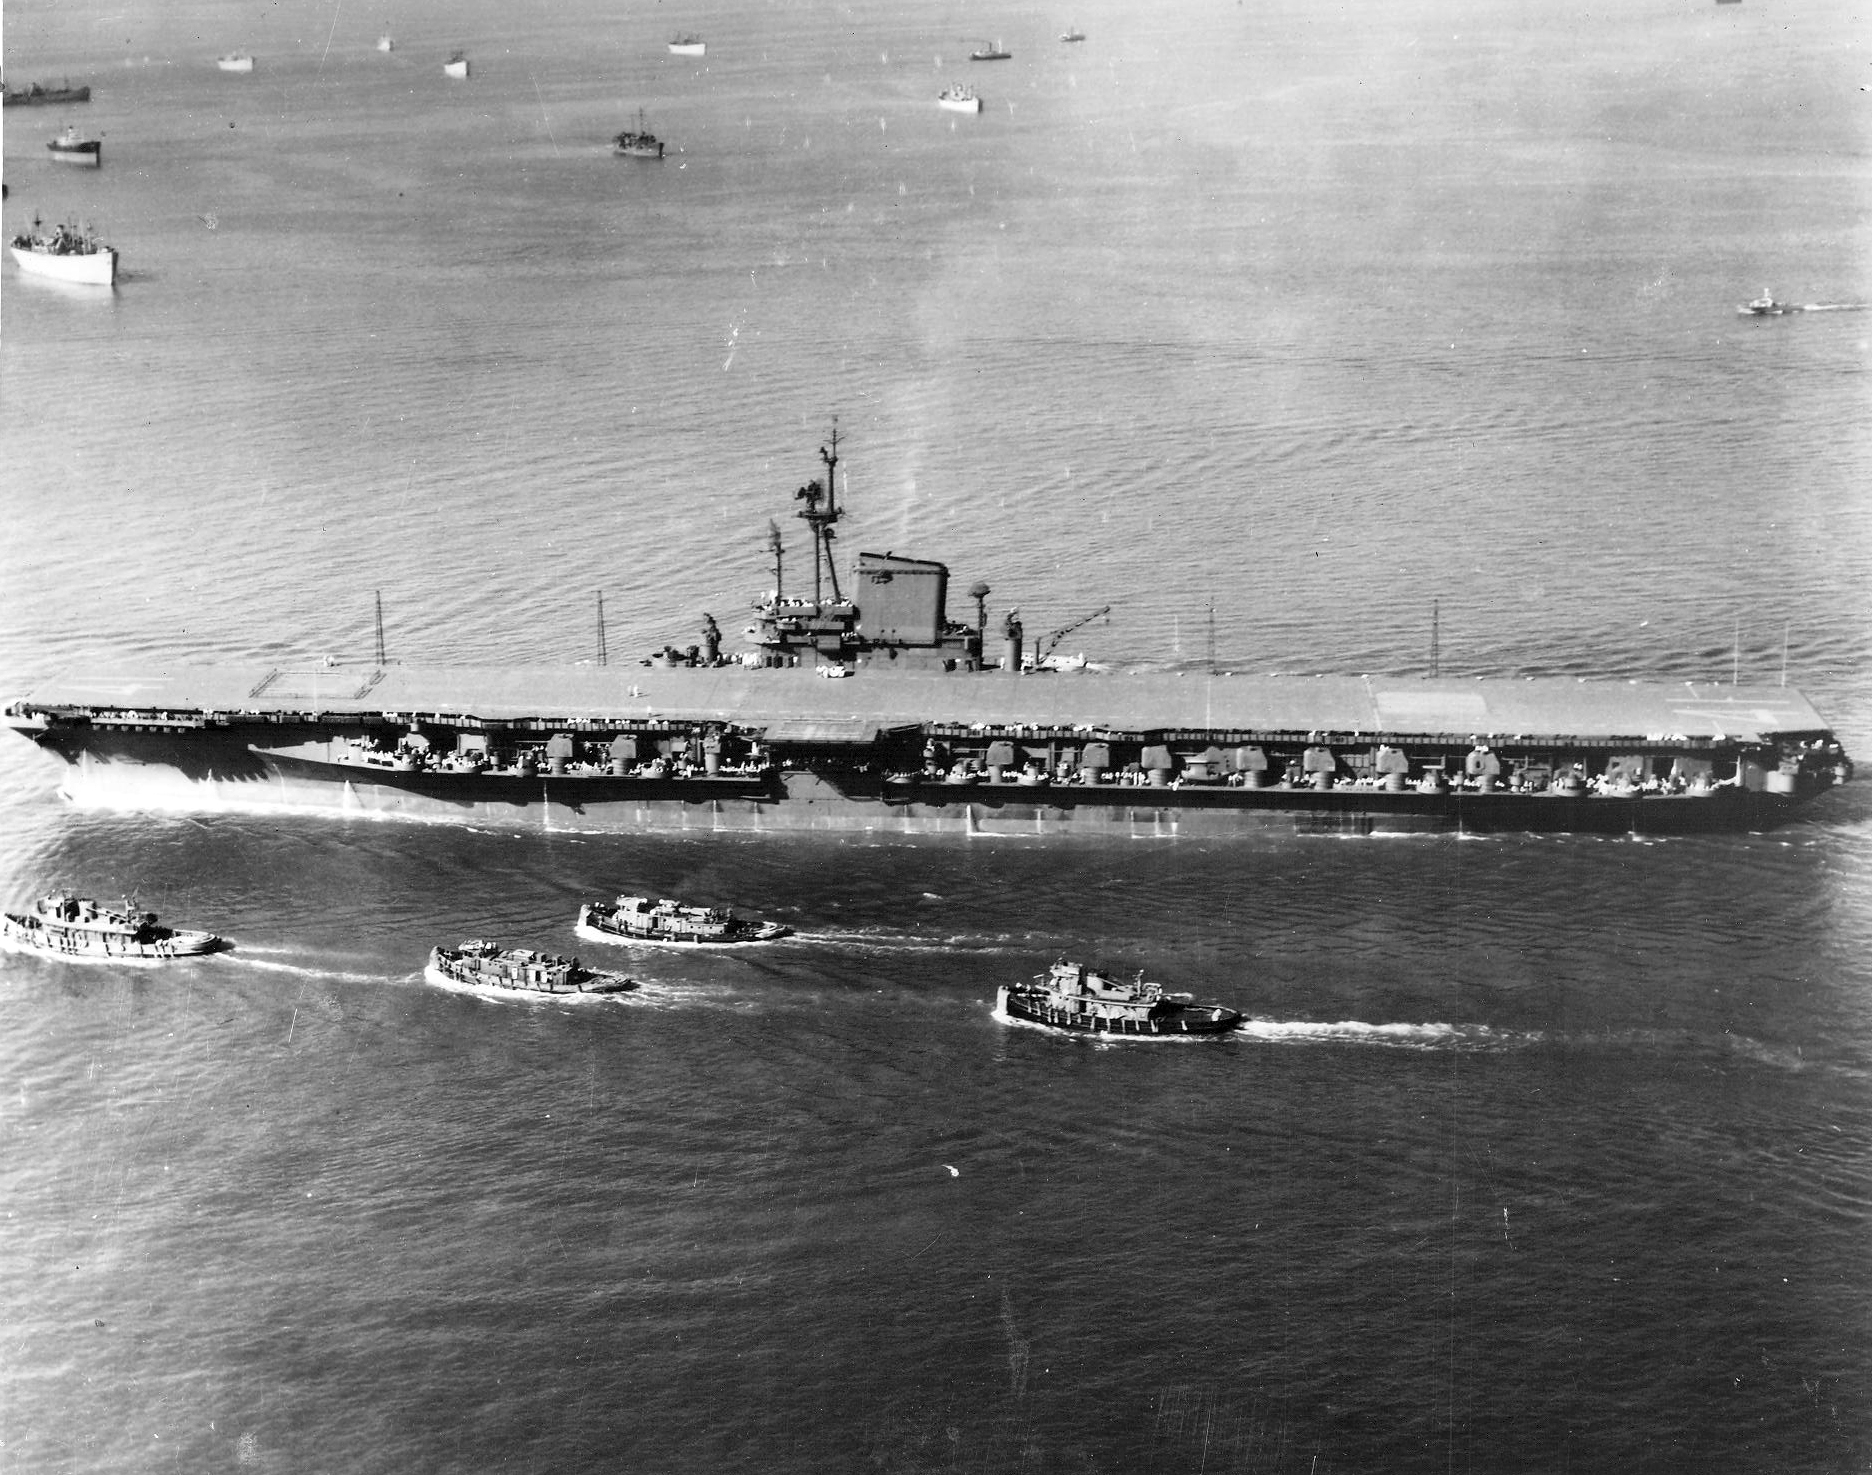 File Uss Midway Cvb 41 Underway On 10 September 1945 Jpg Wikimedia Commons